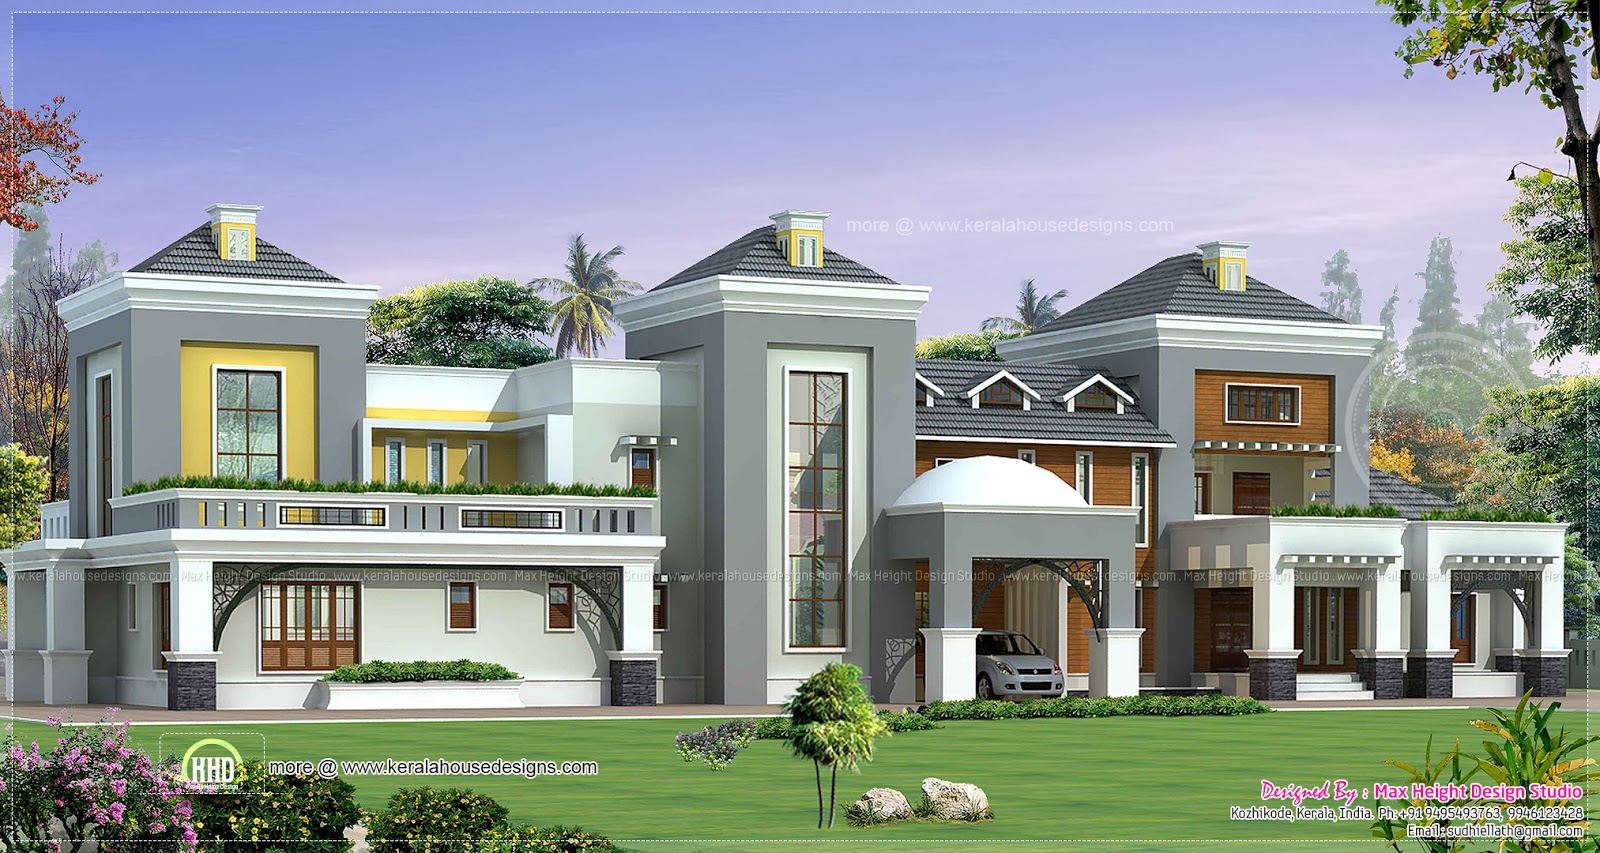 Luxury house plan with photo home kerala plans Luxury house plans with photos of interior